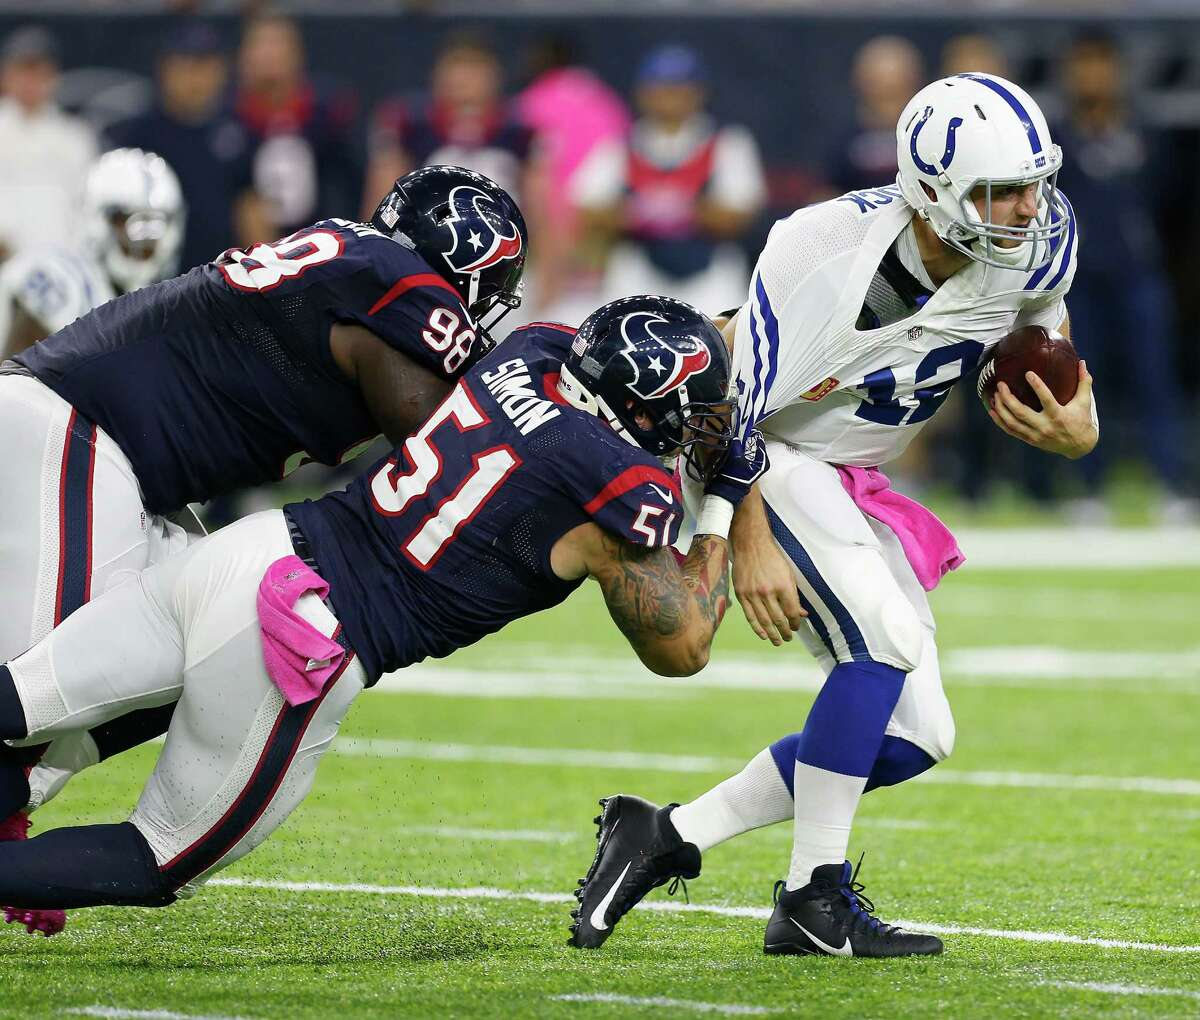 Indianapolis Colts quarterback Andrew Luck (12) is sacked by Houston Texans outside linebacker John Simon (51) and nose tackle D.J. Reader (98) during the first quarter of an NFL football game at NRG Stadium on Sunday, Oct. 16, 2016, in Houston.